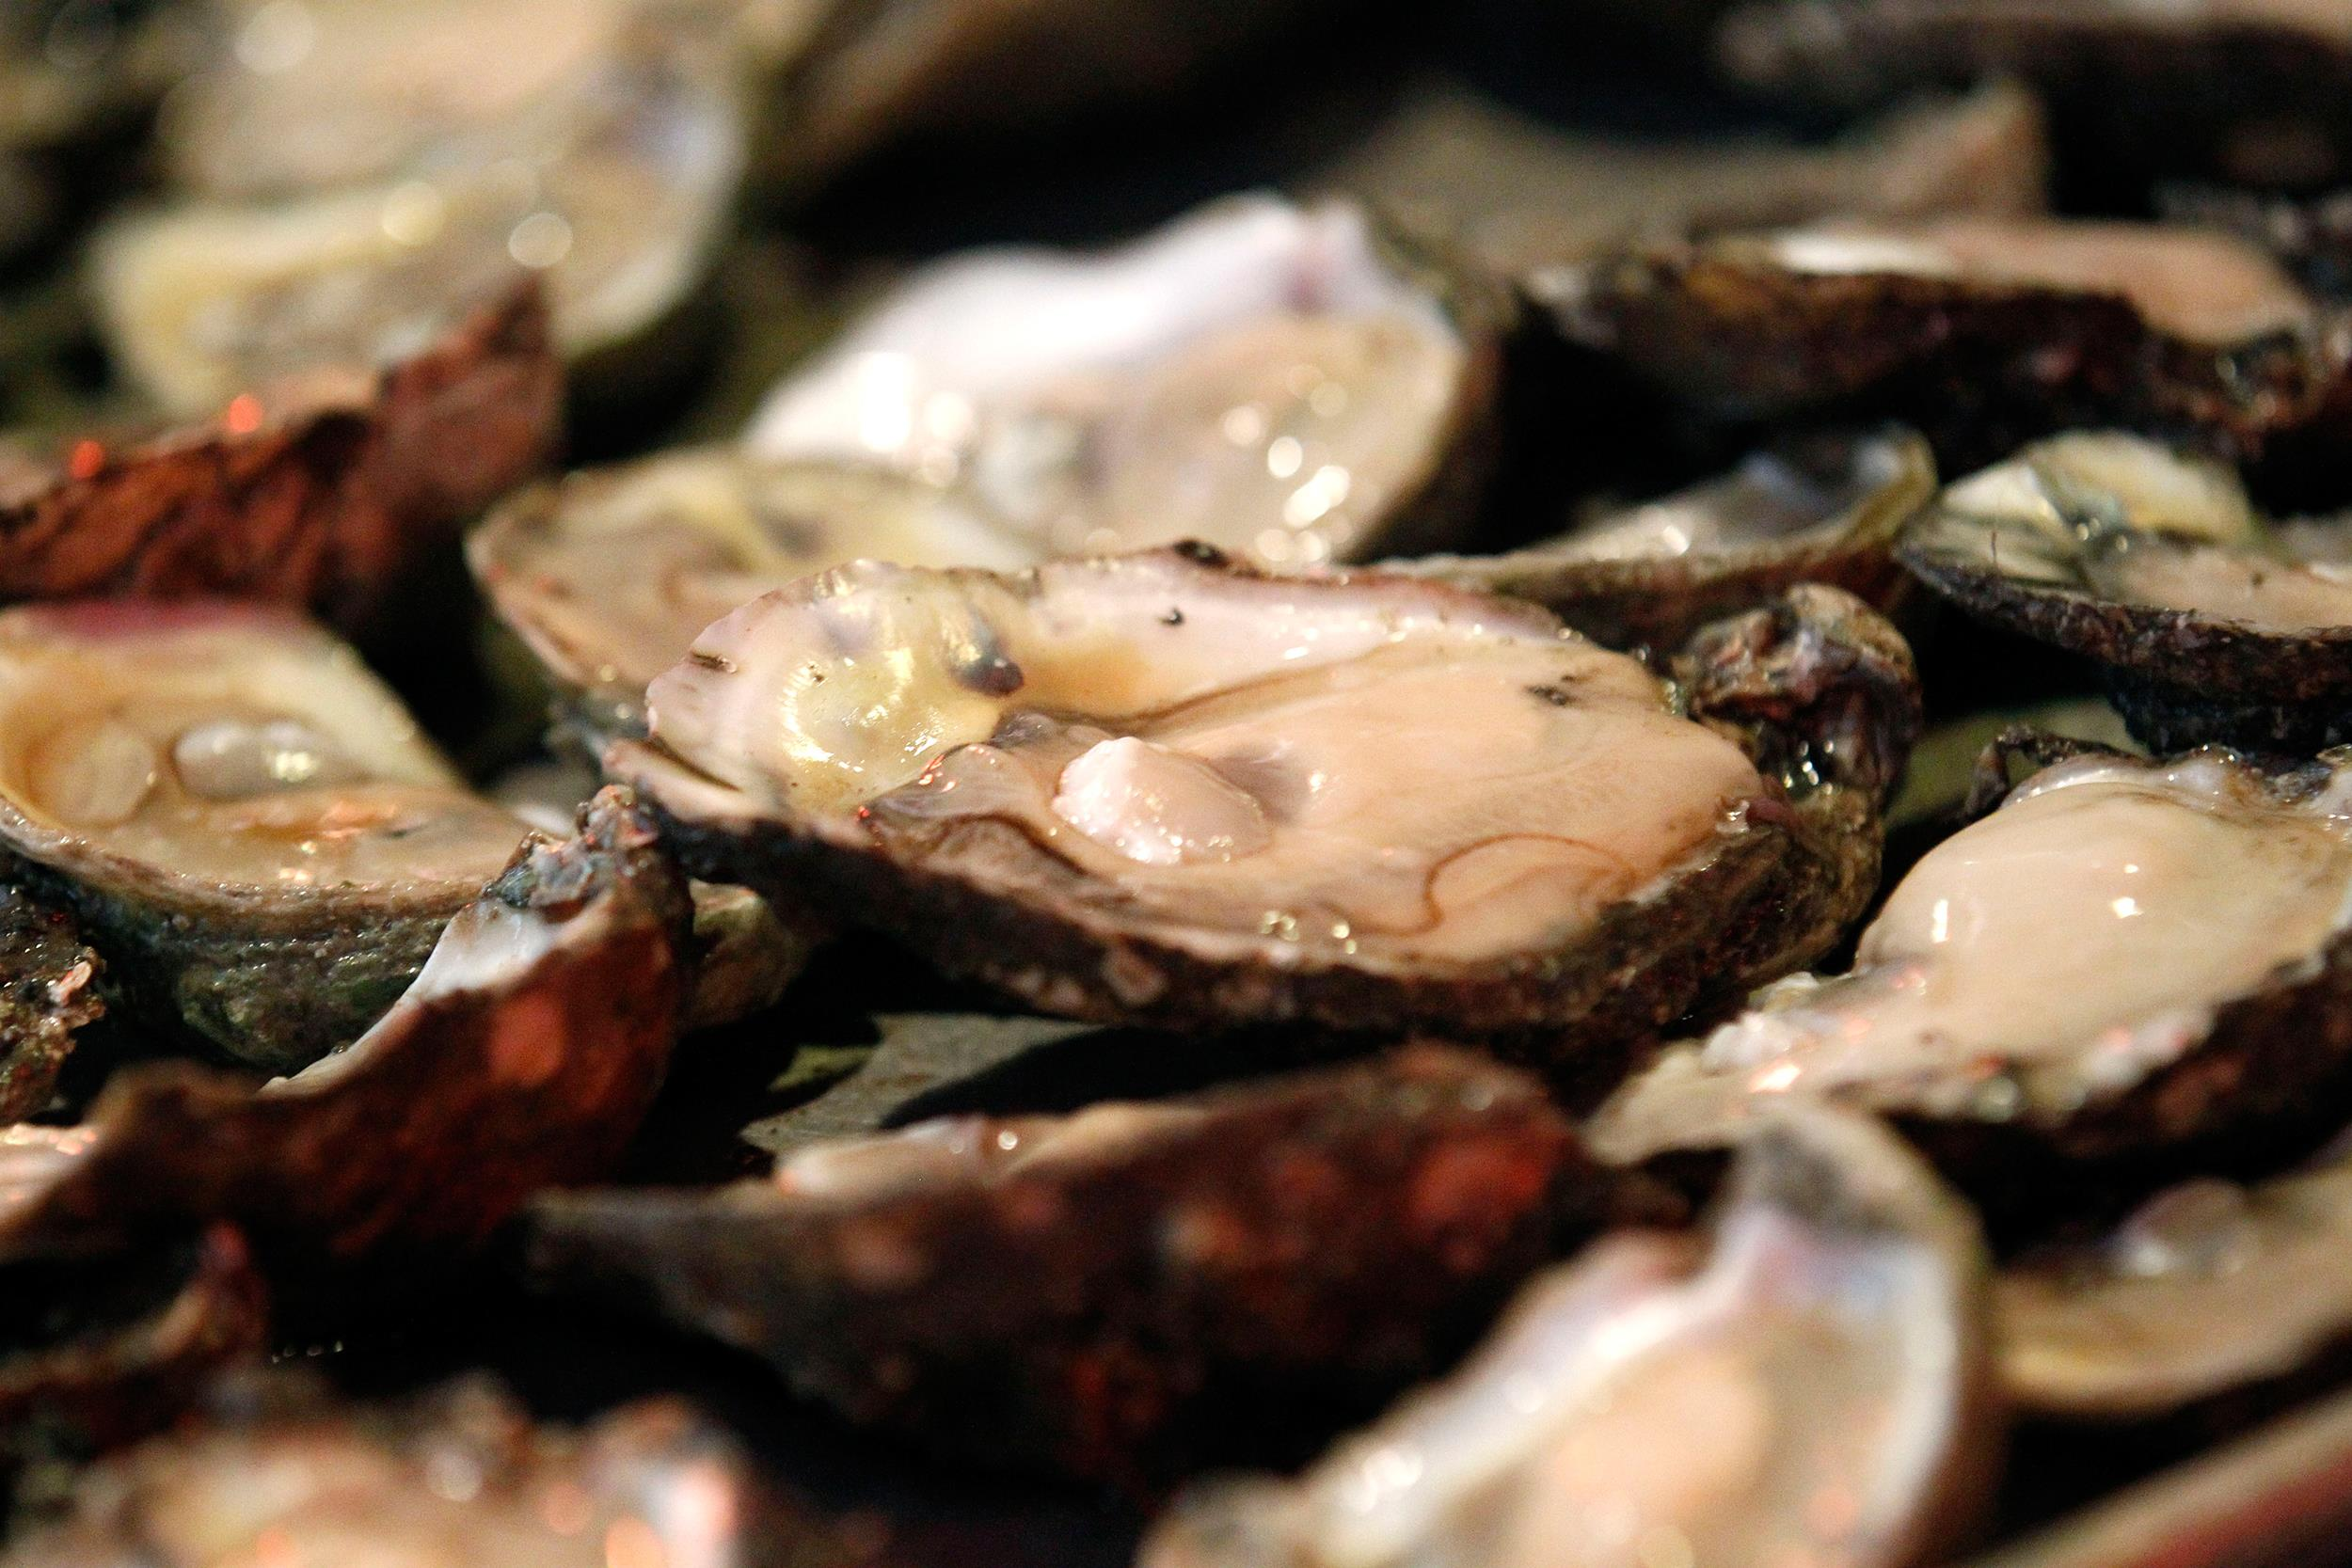 Image: Raw oysters